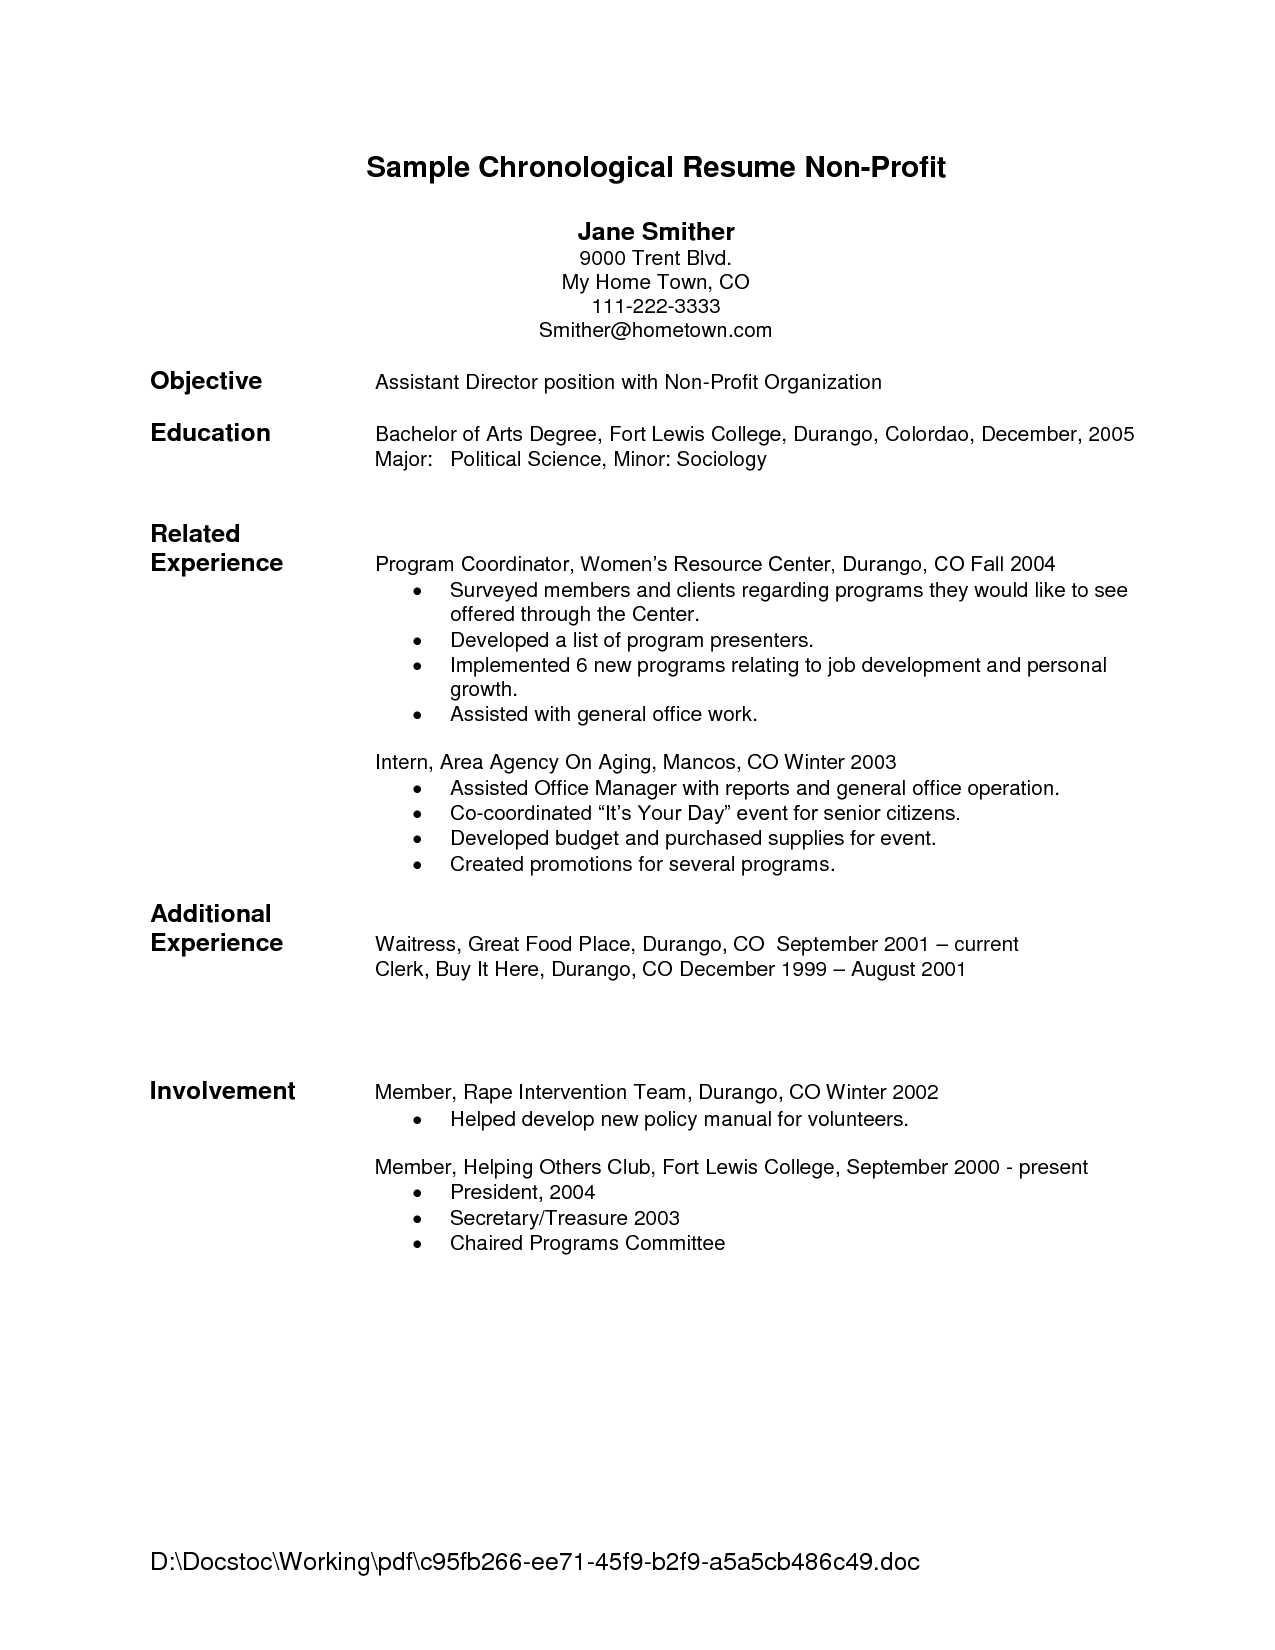 Chronological Resume Sample Chronological Resume Template  Monday Resume  Pinterest